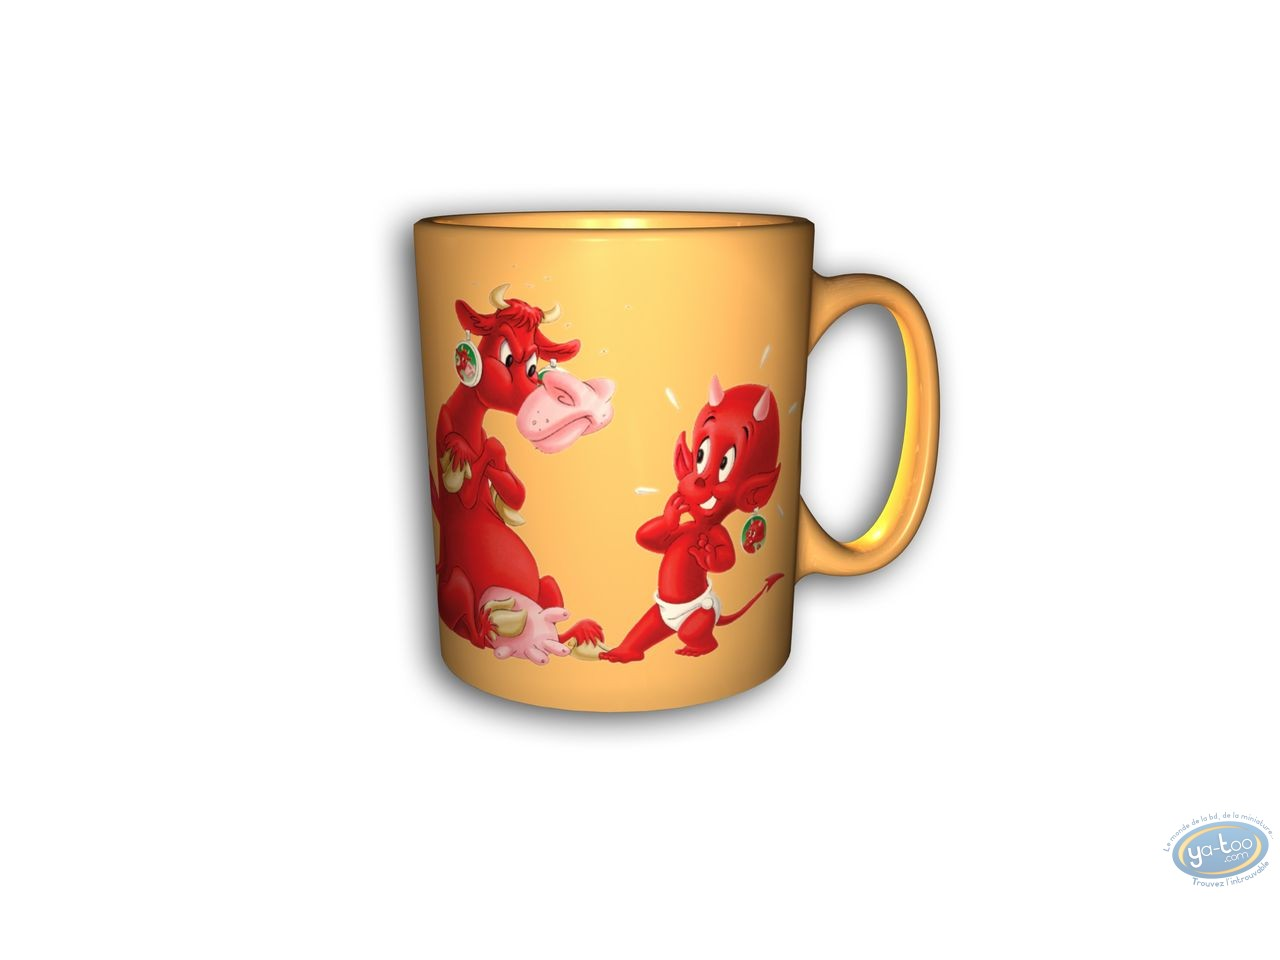 Tableware, Hot Stuff : Mug, Hot Stuff : Yellow mug